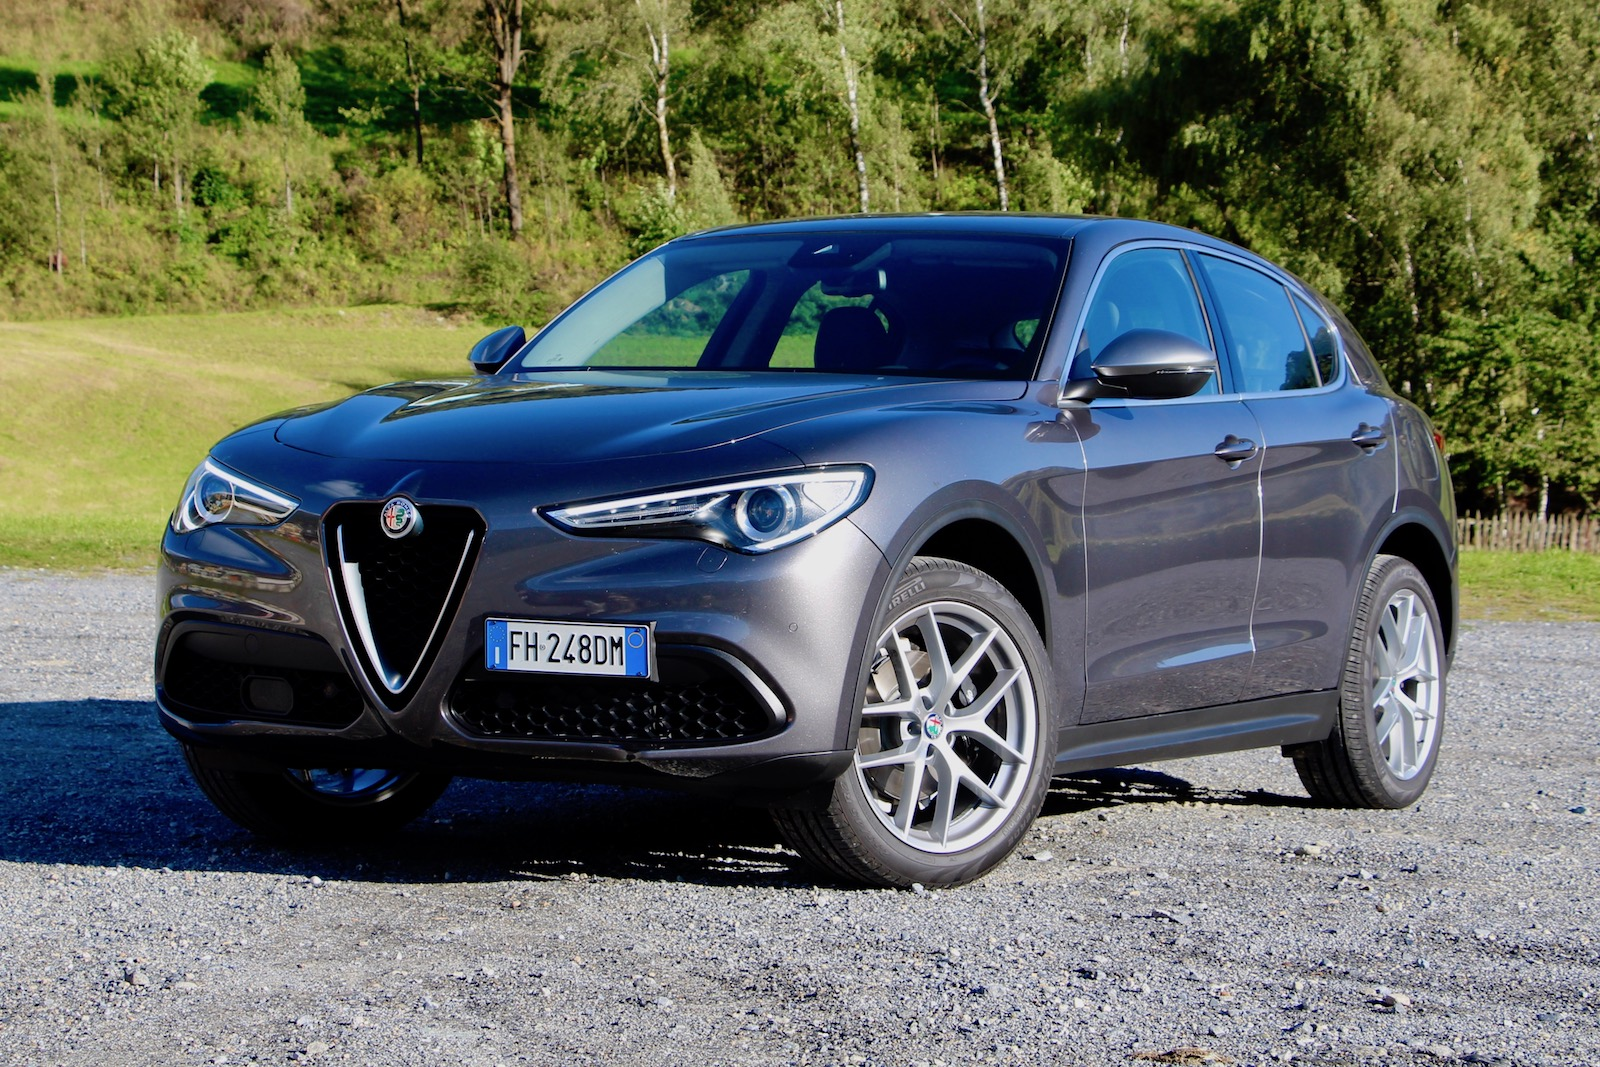 Mercedes Smart Car >> 2018 Alfa Romeo Stelvio First Drive Review - AutoGuide.com